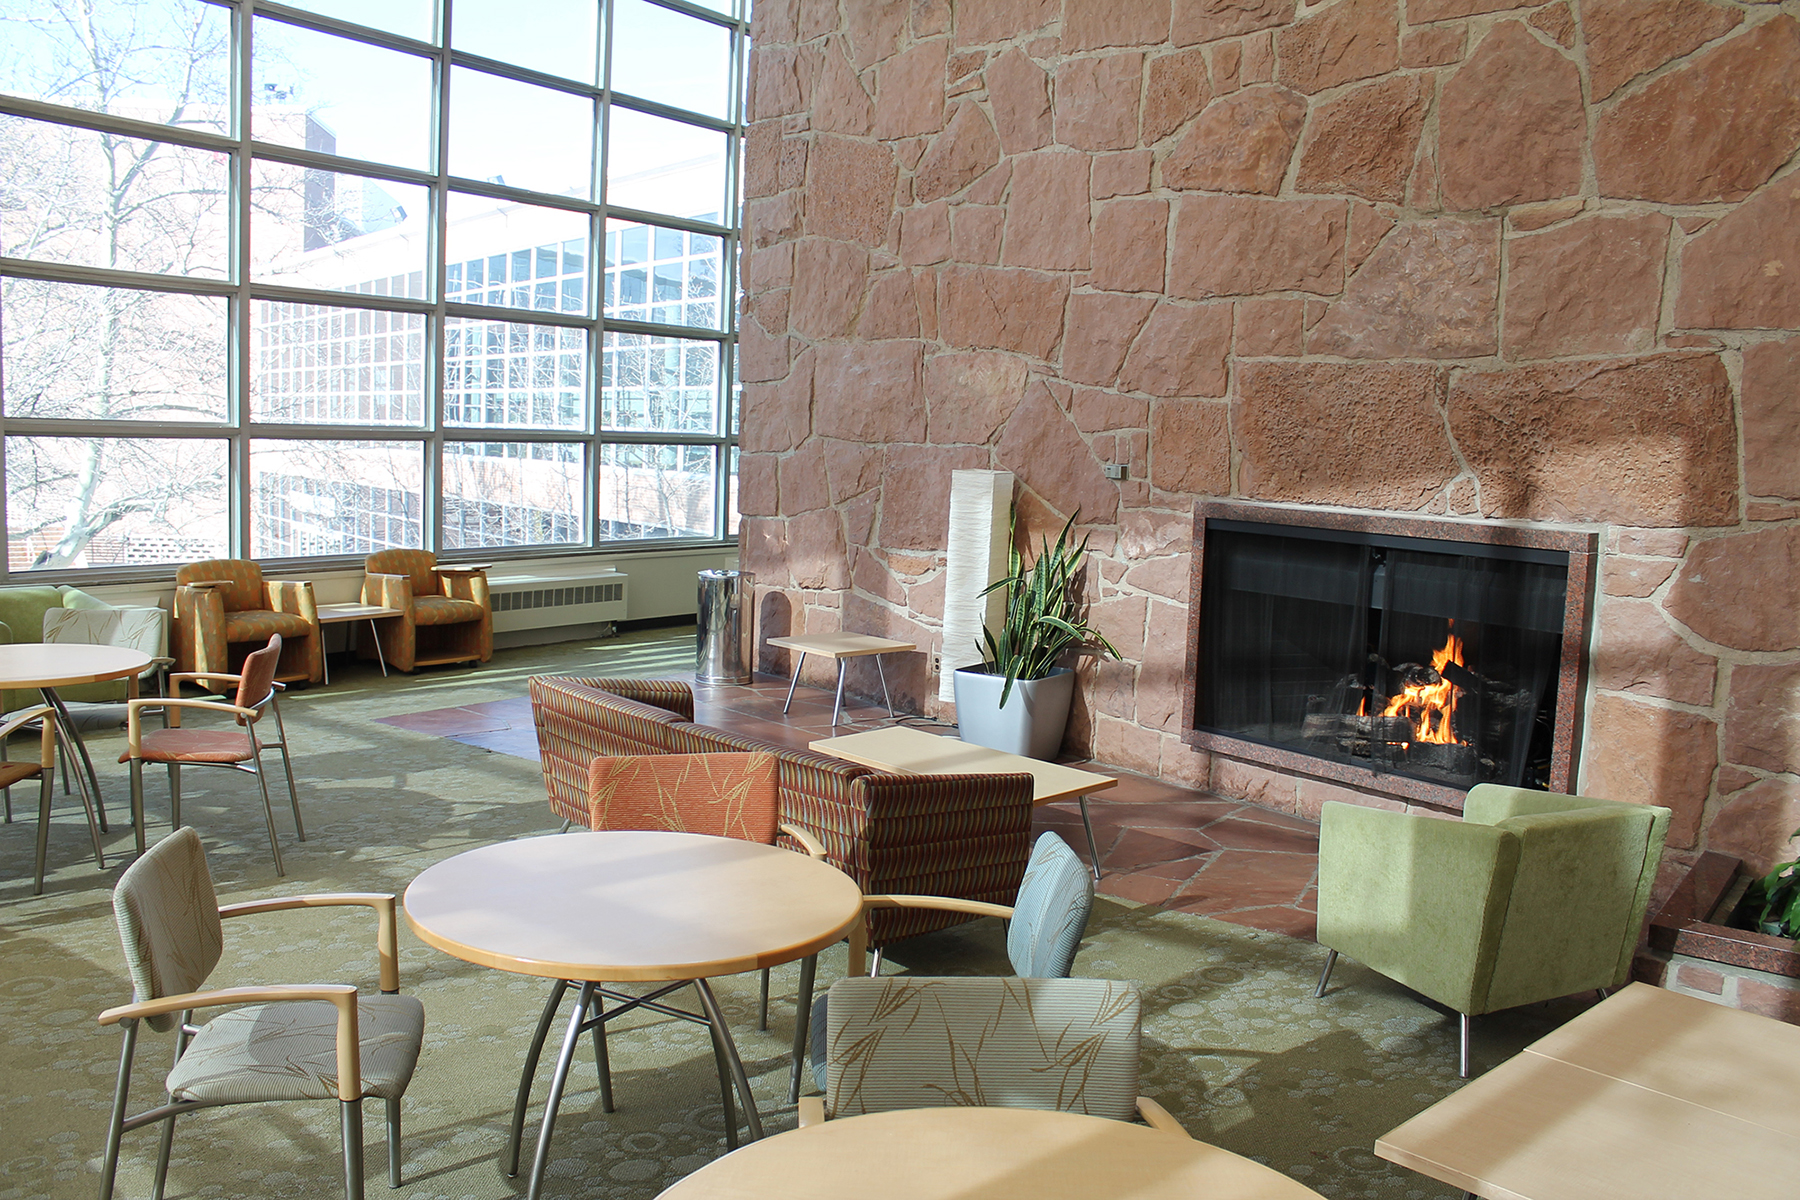 A photo of the student lounge fireplace while the fire is lit.